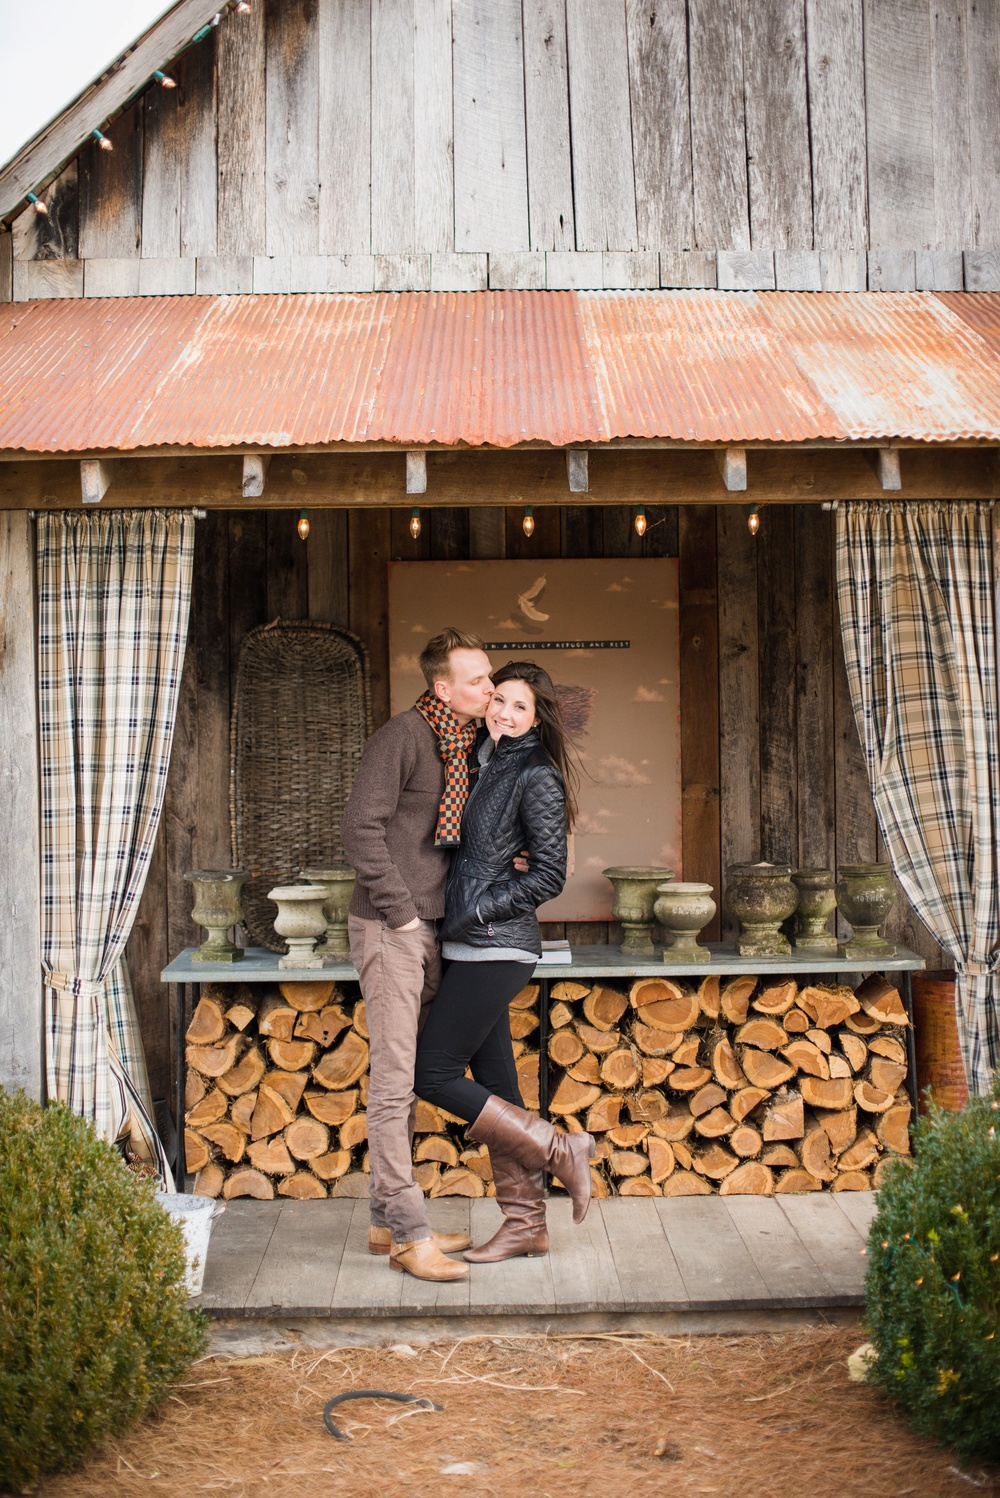 Photo by Rachel Coffey Photography, Leiper's Fork, TN